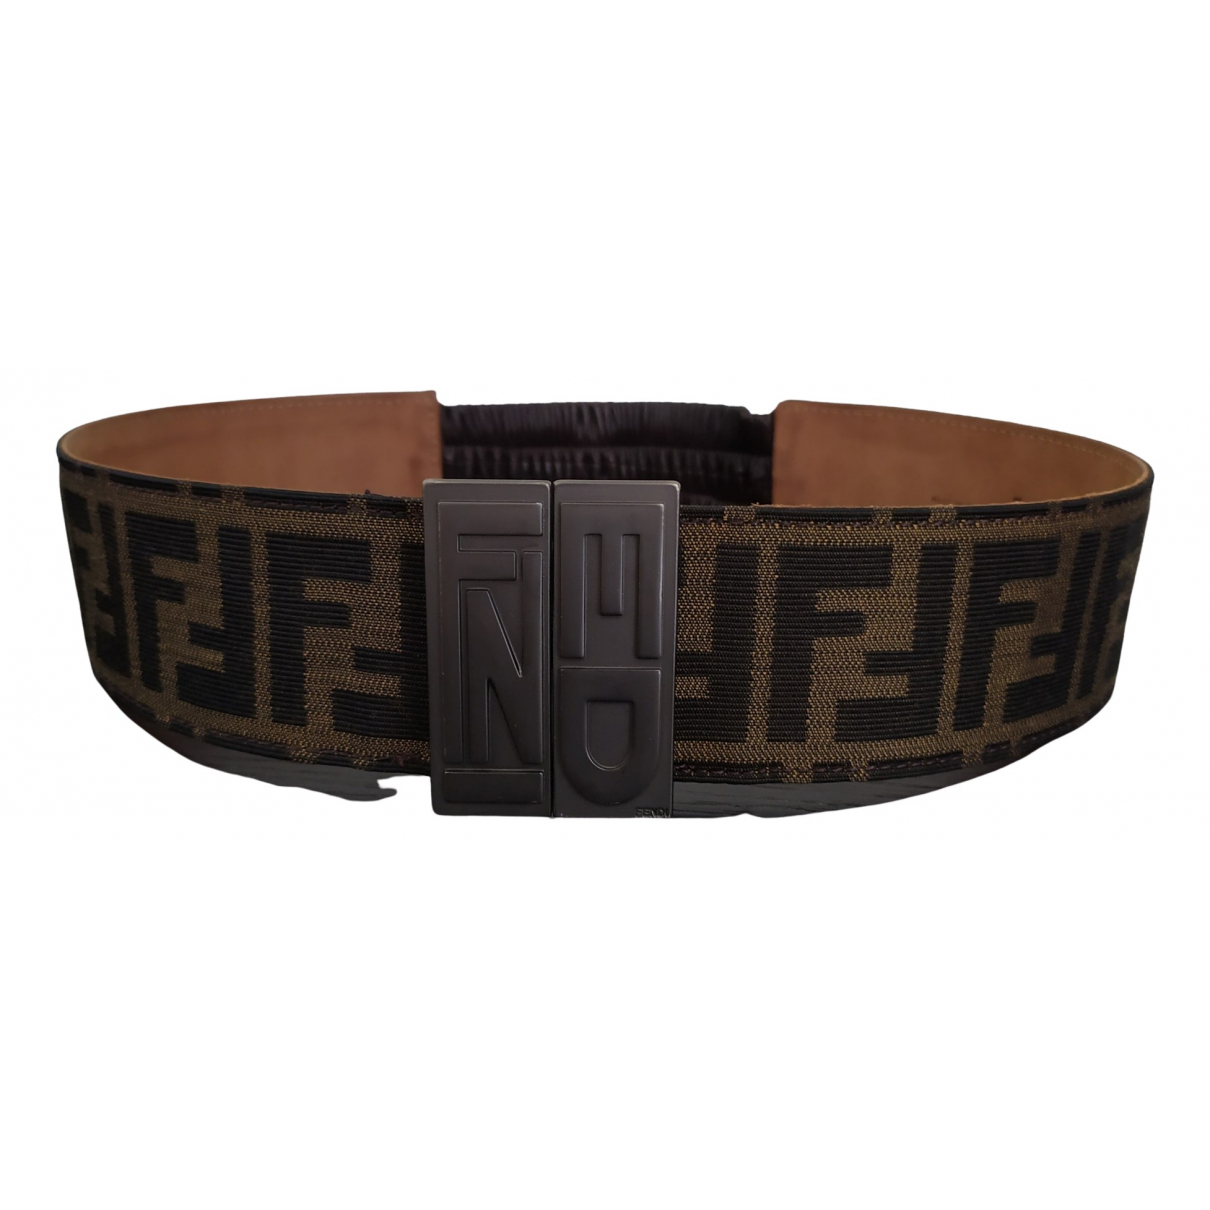 Fendi \N Cloth belt for Women 75 cm